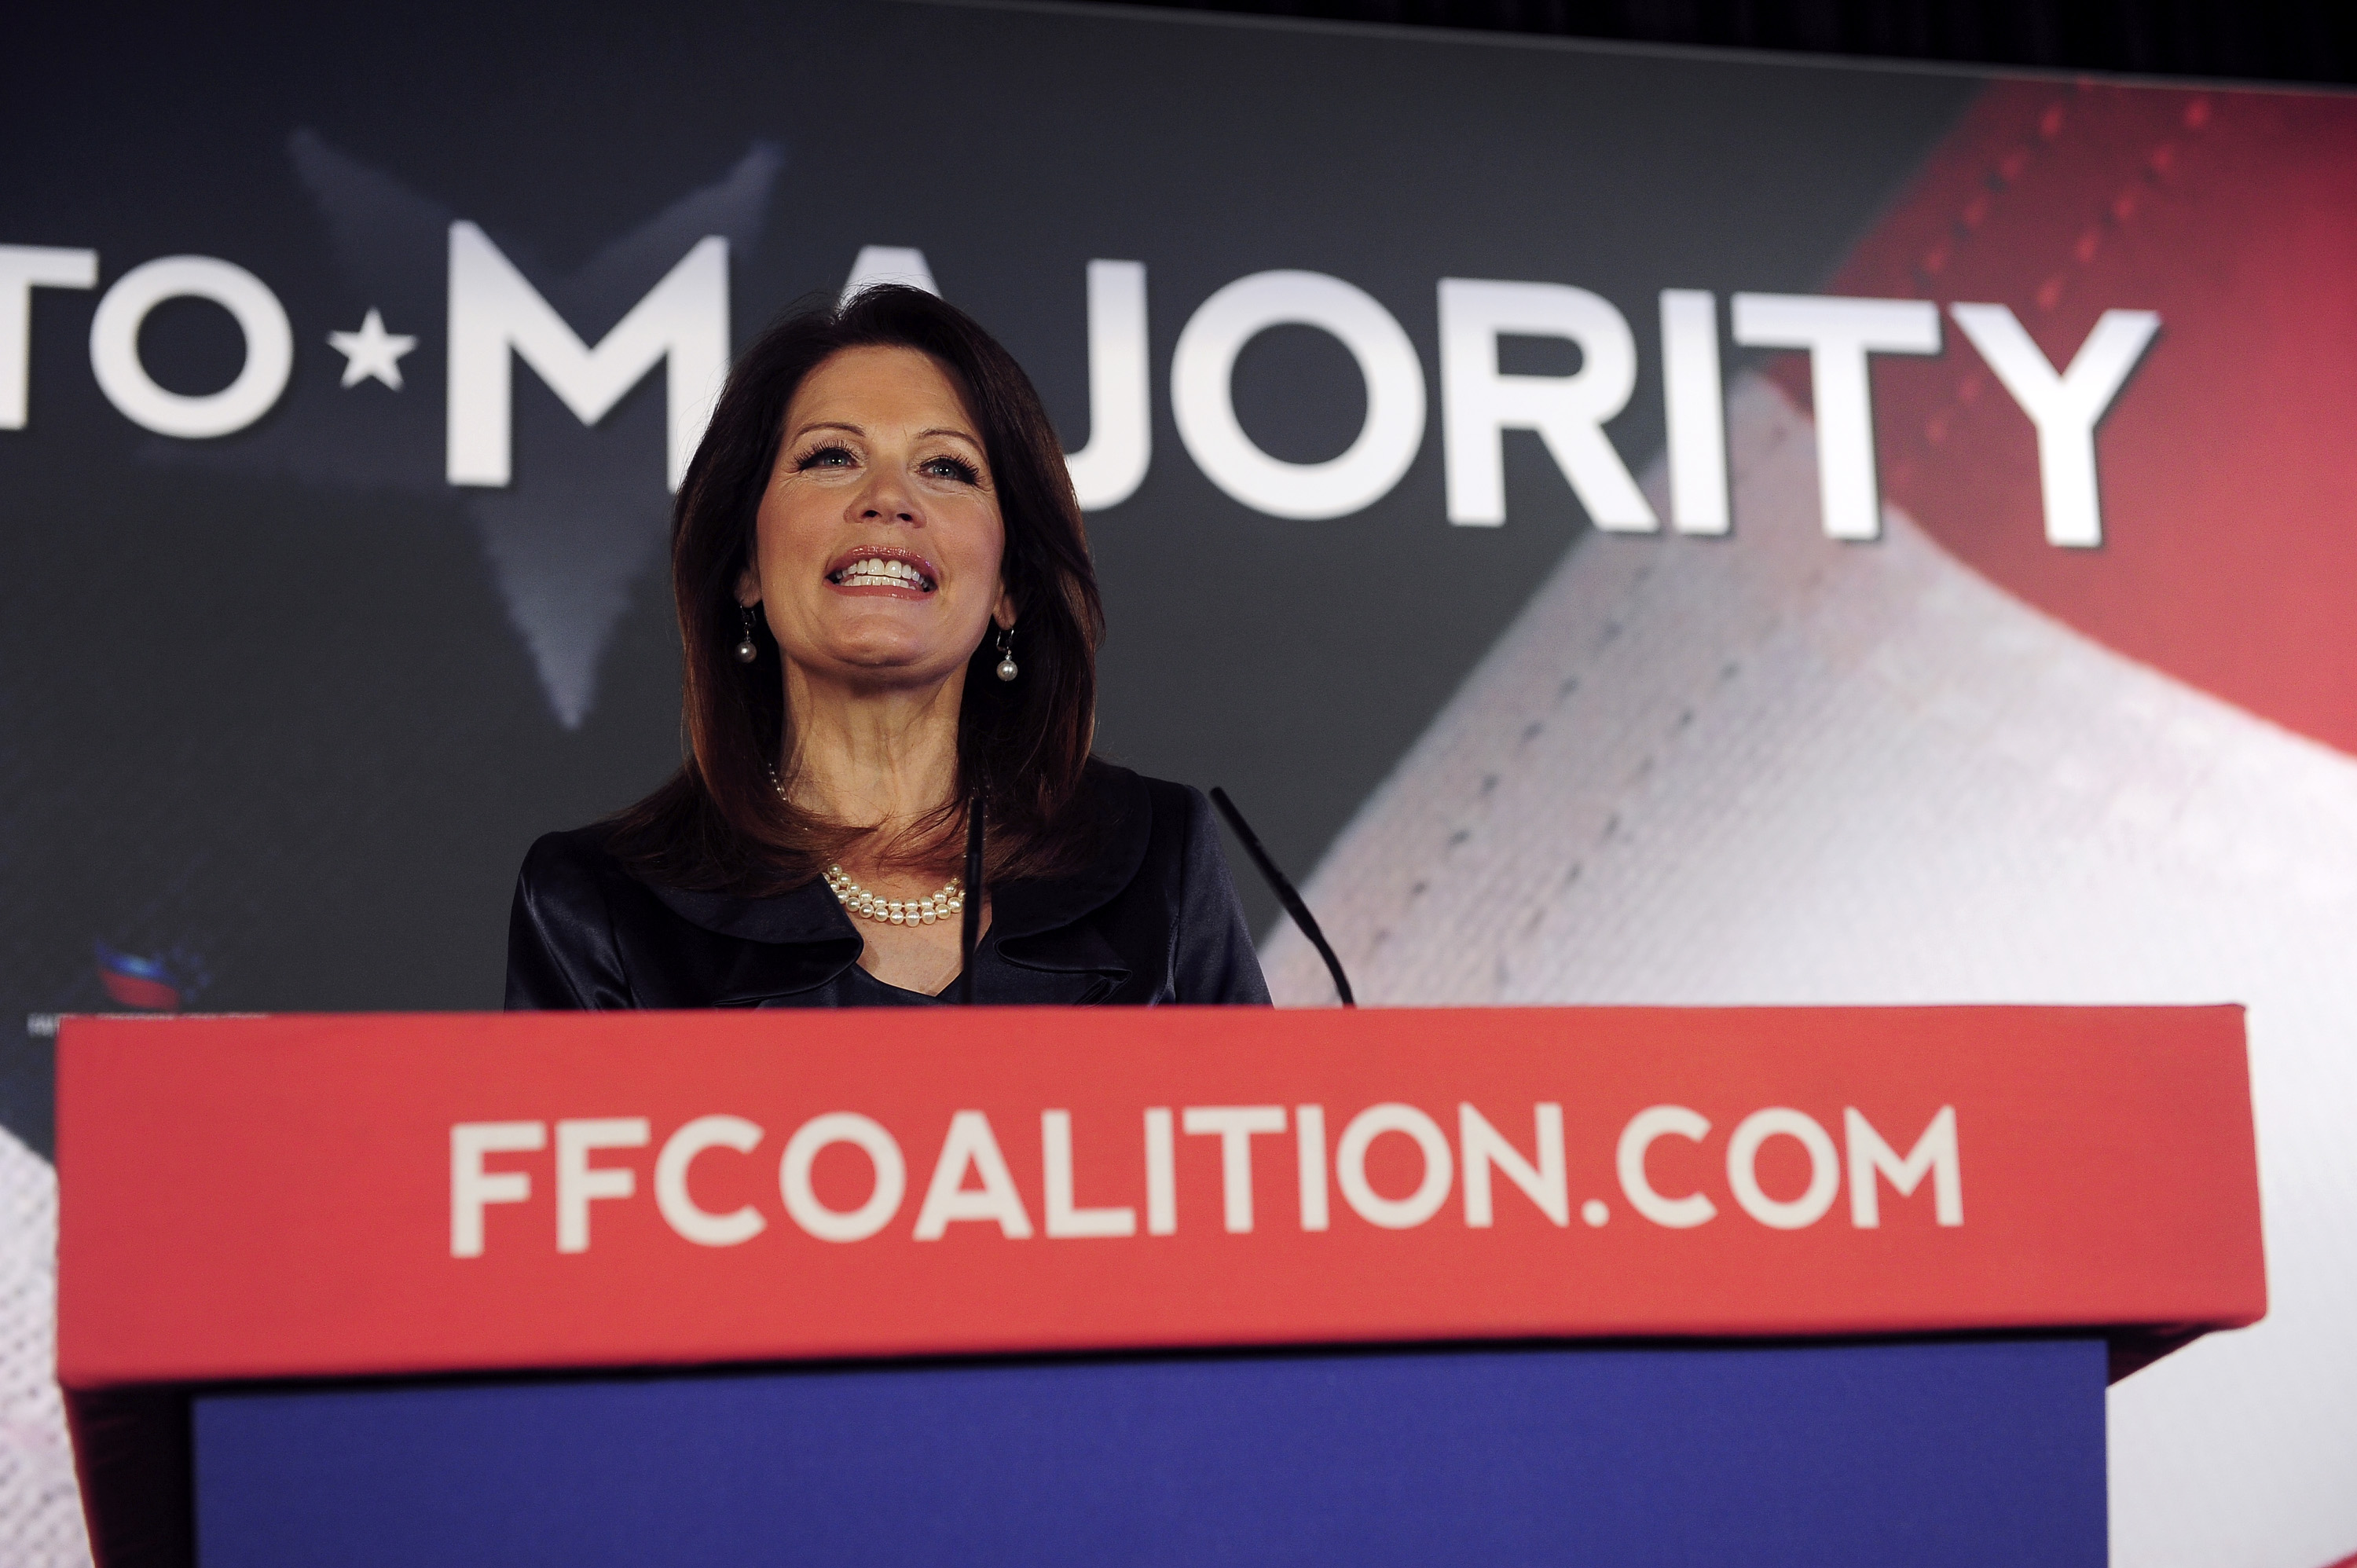 Leading liberal website falls for fake story about Michele Bachmann